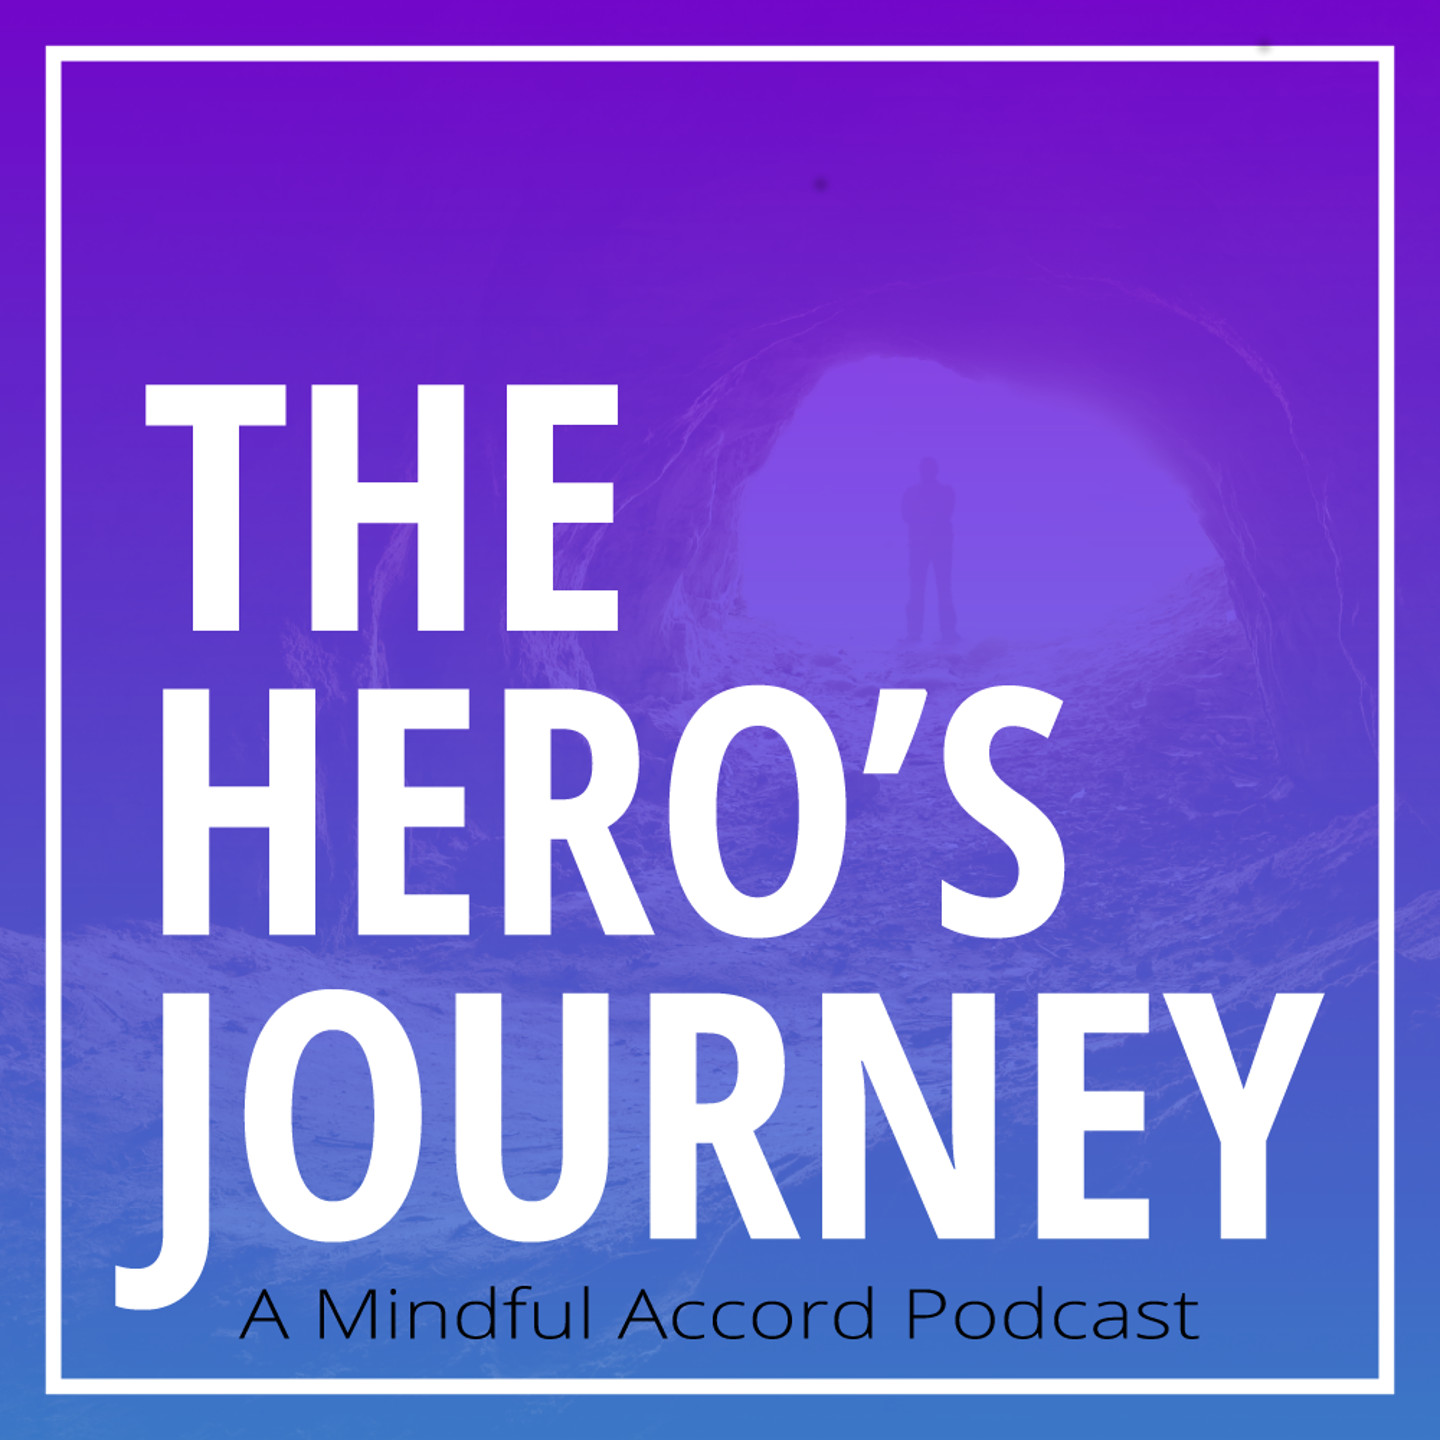 The Hero's Journey: A Mindful Accord Podcast